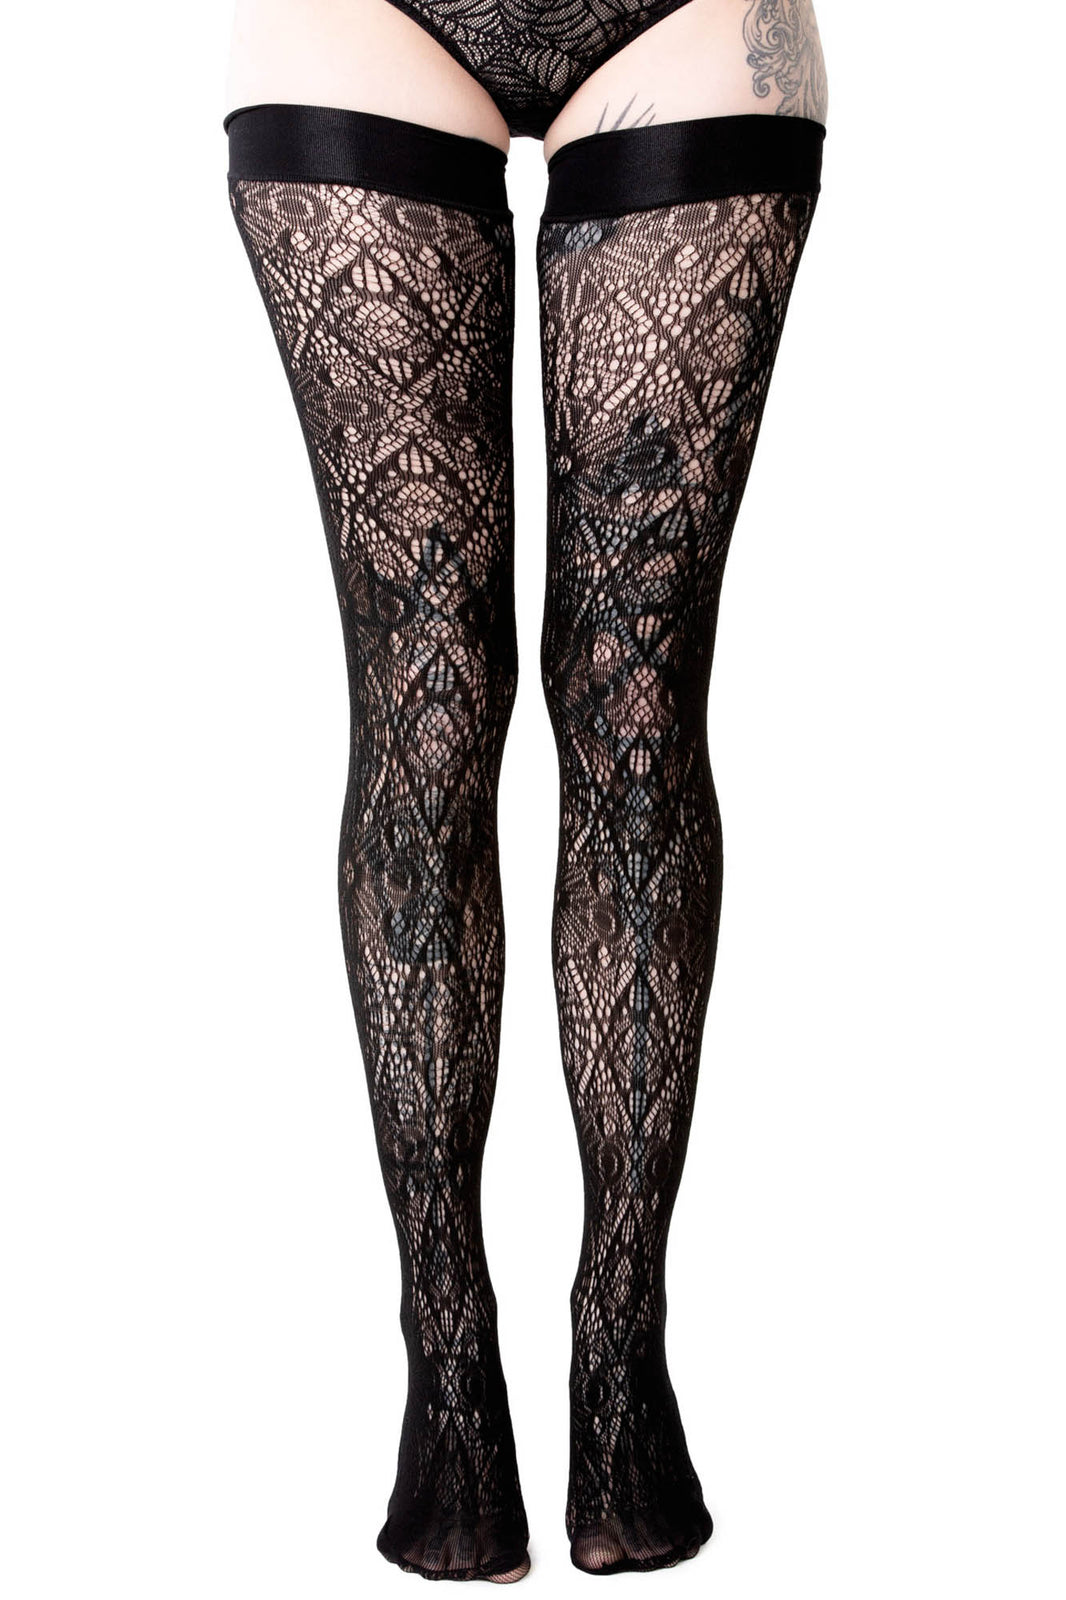 Wolfsbane Stockings [B]